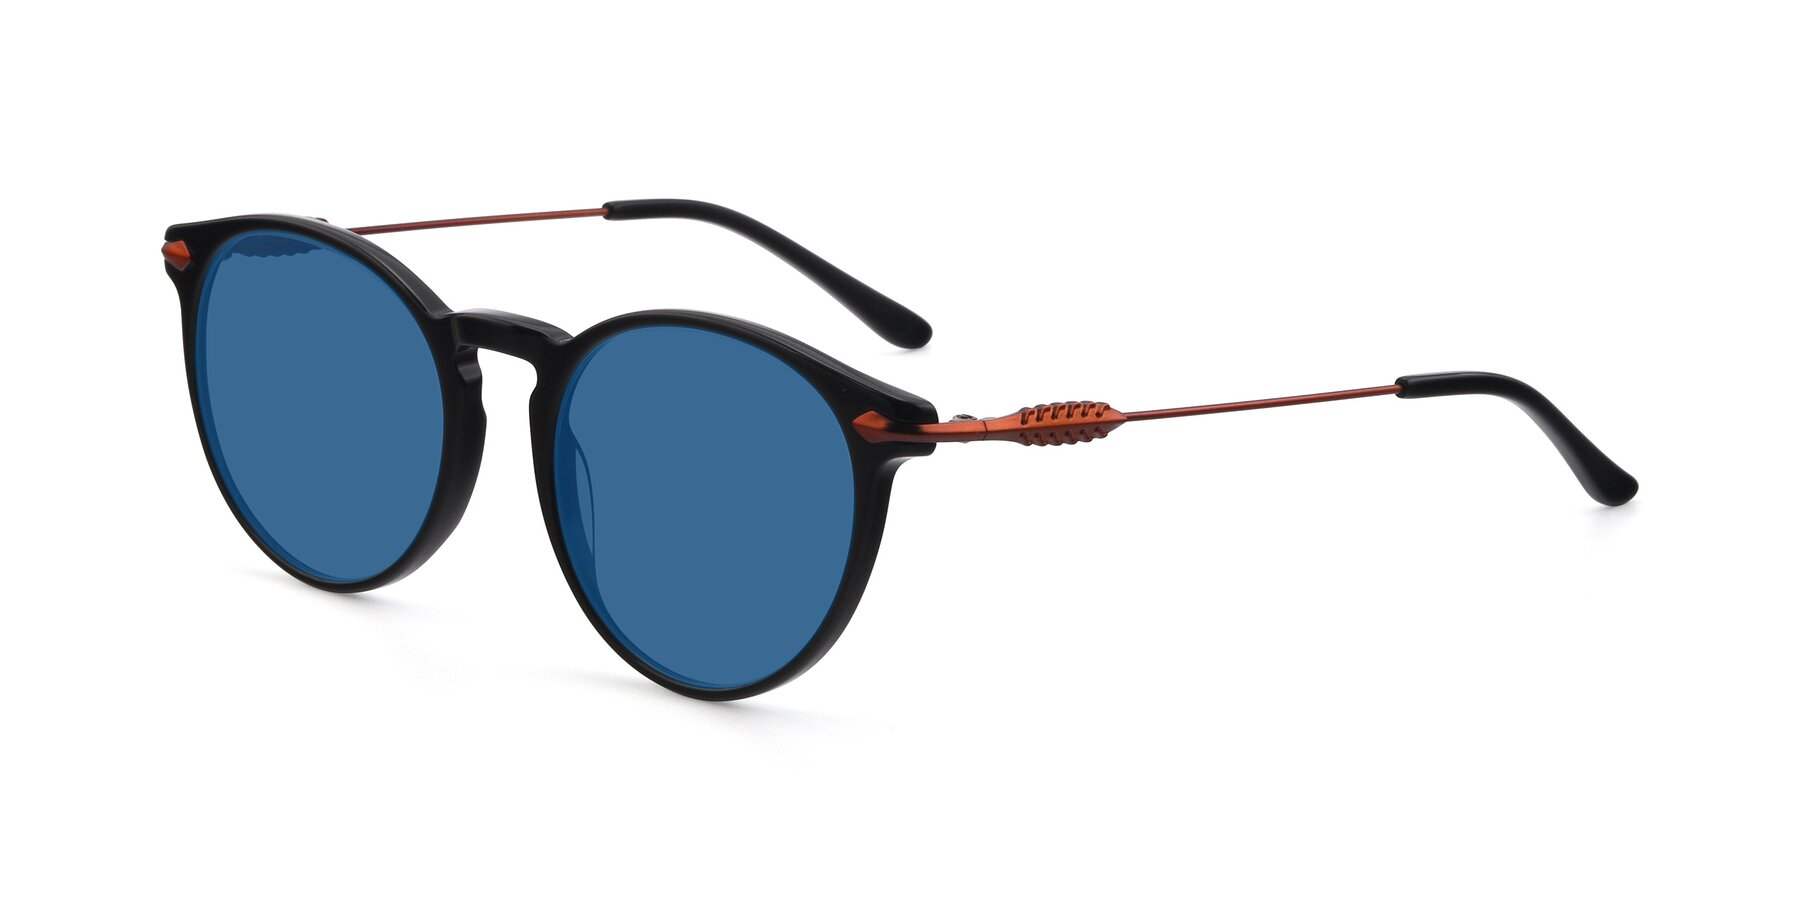 Angle of 17660 in Black with Blue Tinted Lenses